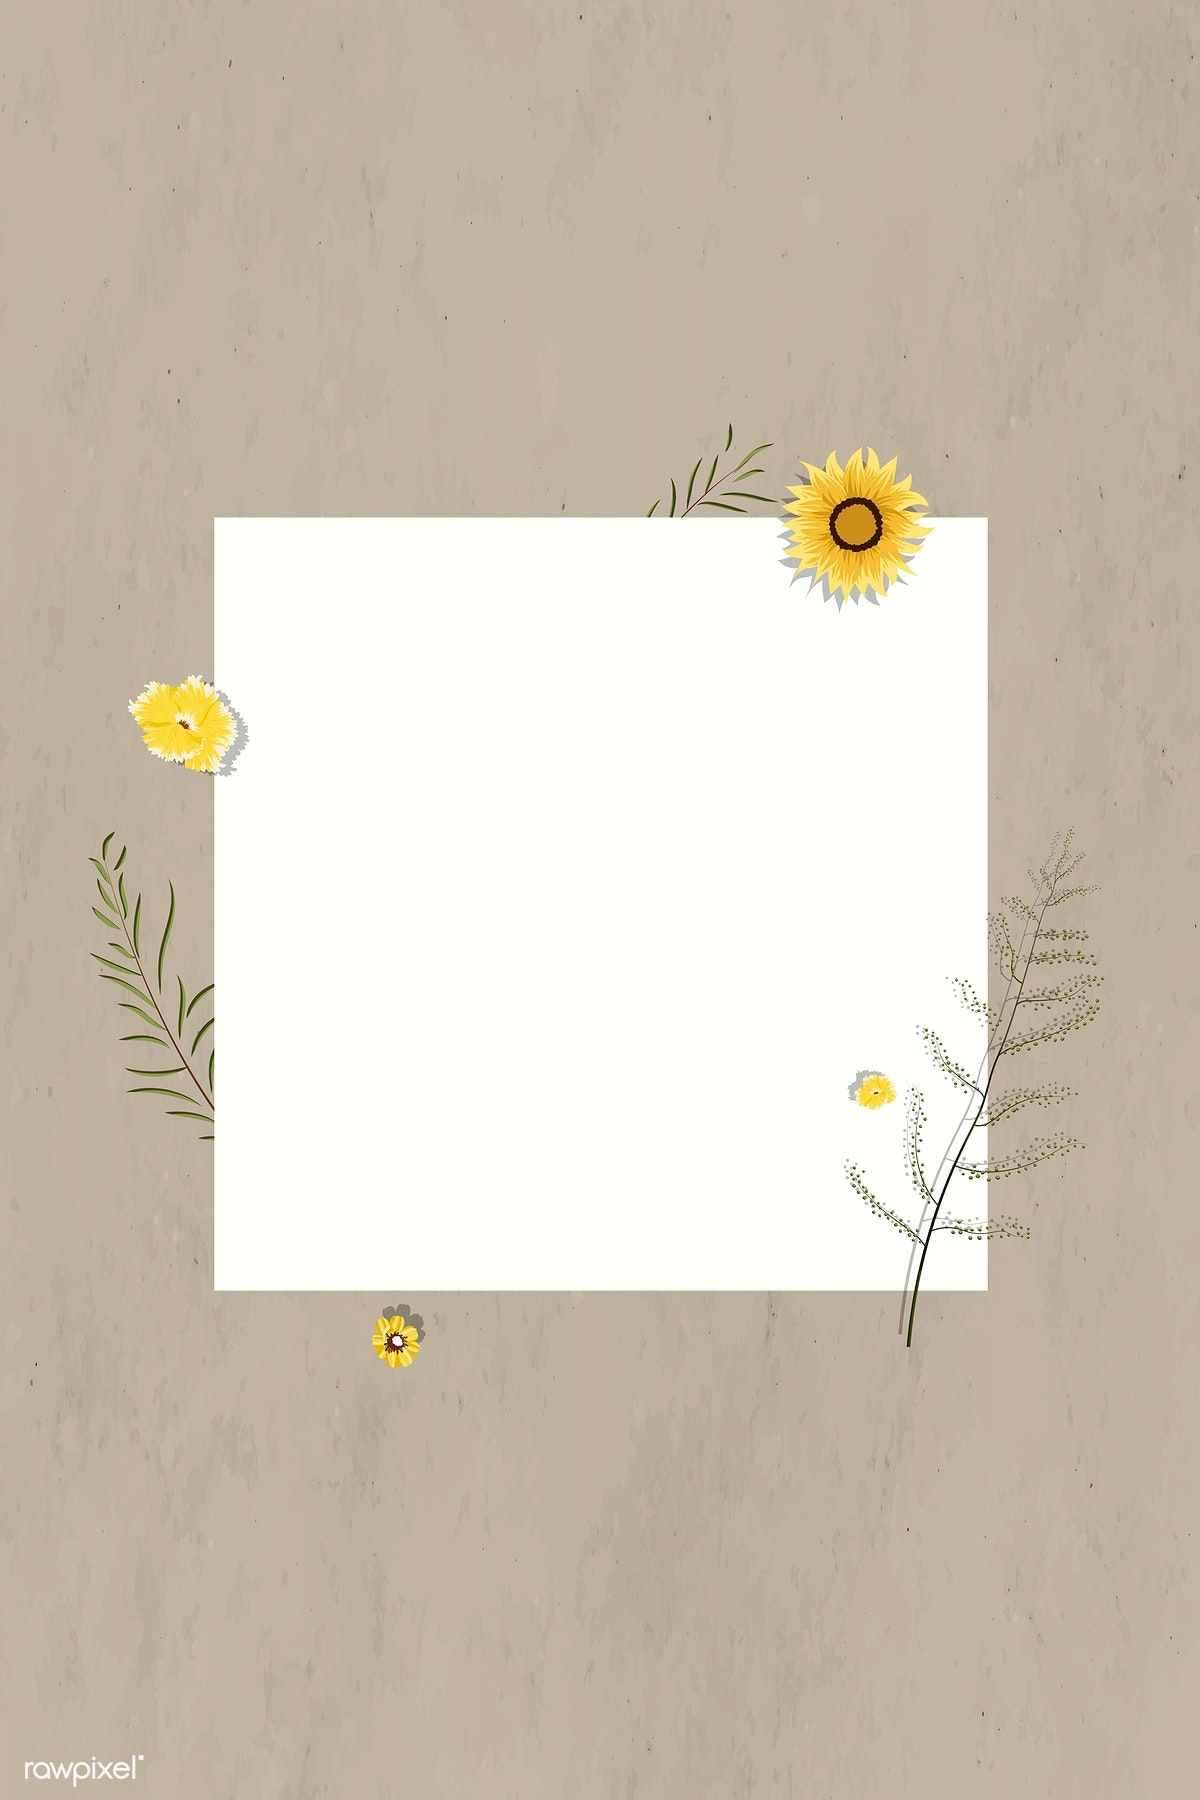 Download premium vector of Blank square sunflower frame vector 1202897